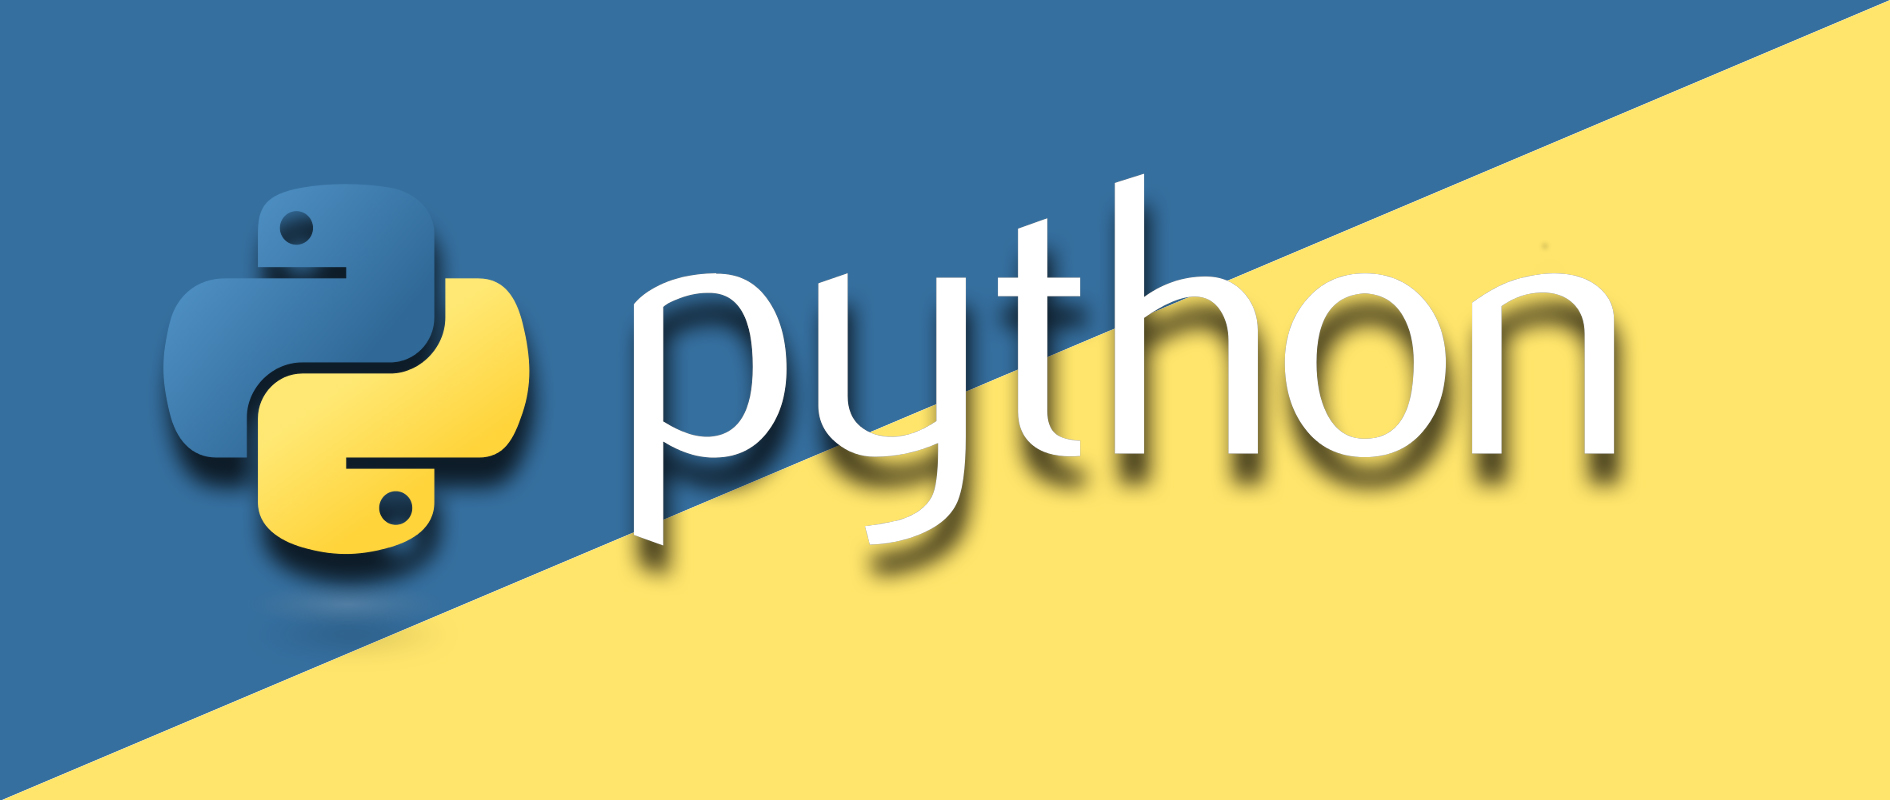 5 MORE Python Packages South African Developers Should Know About